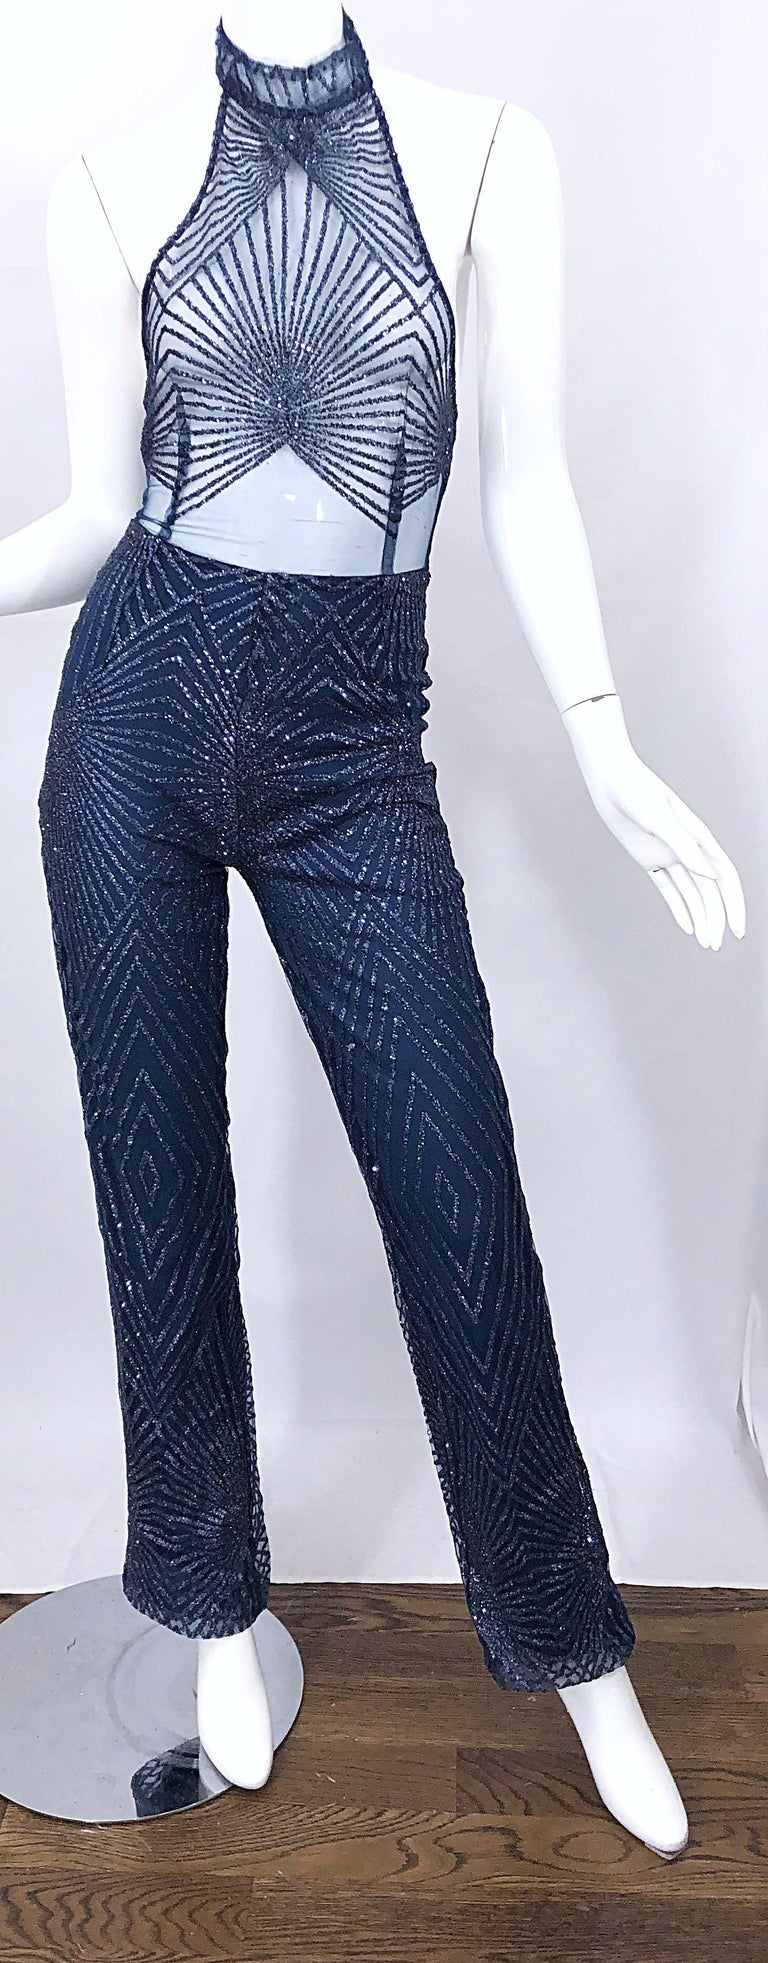 1990s Does 1970s Navy Blue Sheer Mesh Glitter Vintage 90s Sexy Halter Jumpsuit For Sale 6